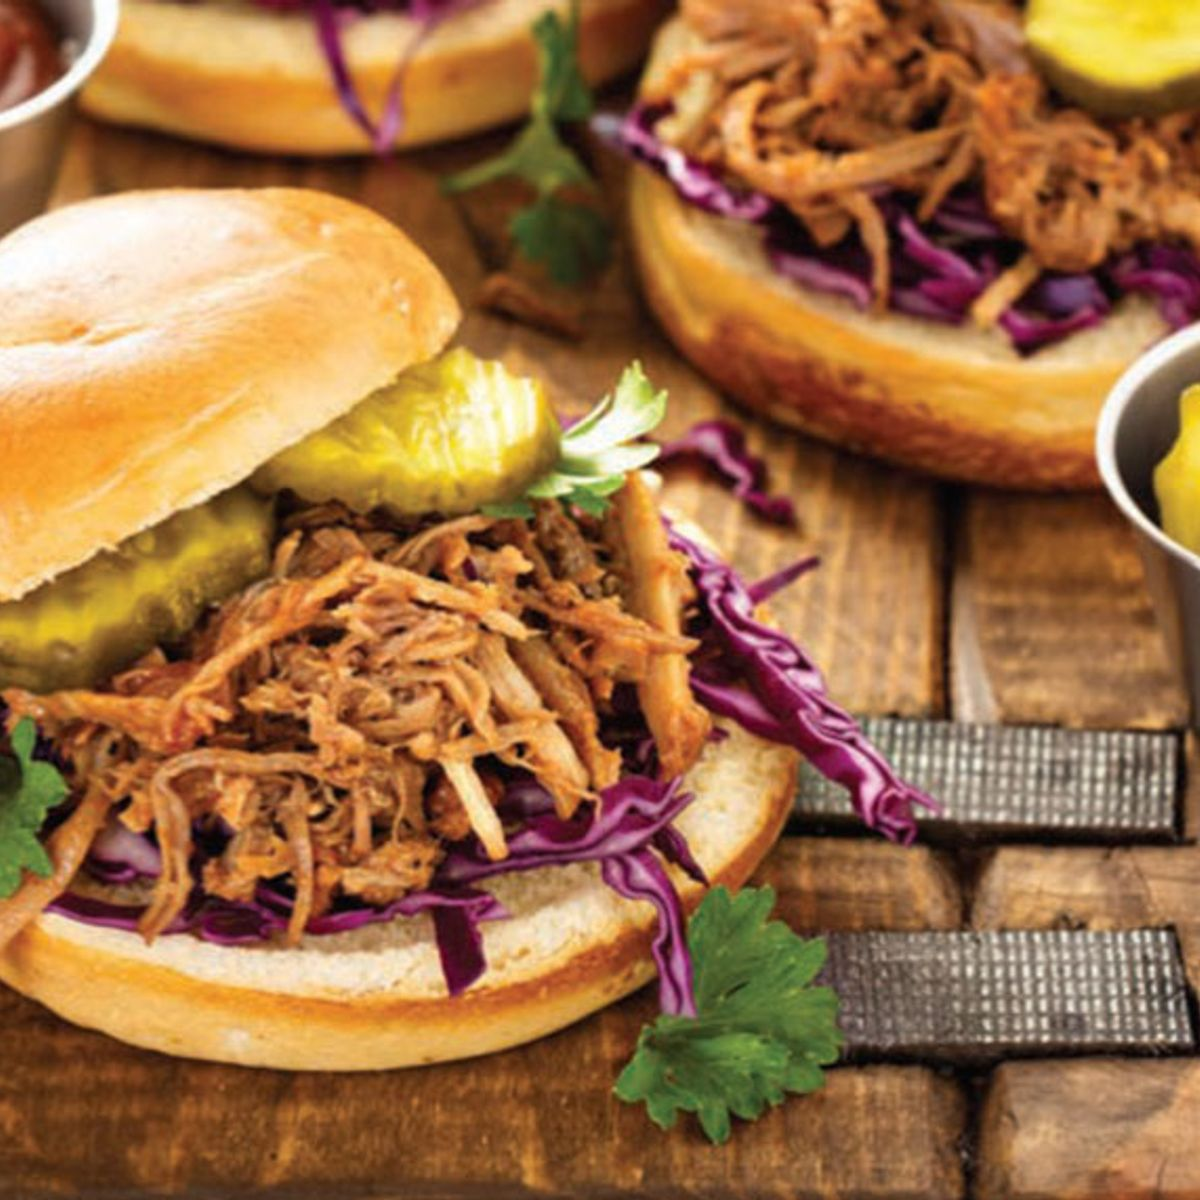 You don't have to tell anyone it only took 90 minutes to cook this pulled pork in an Instant Pot